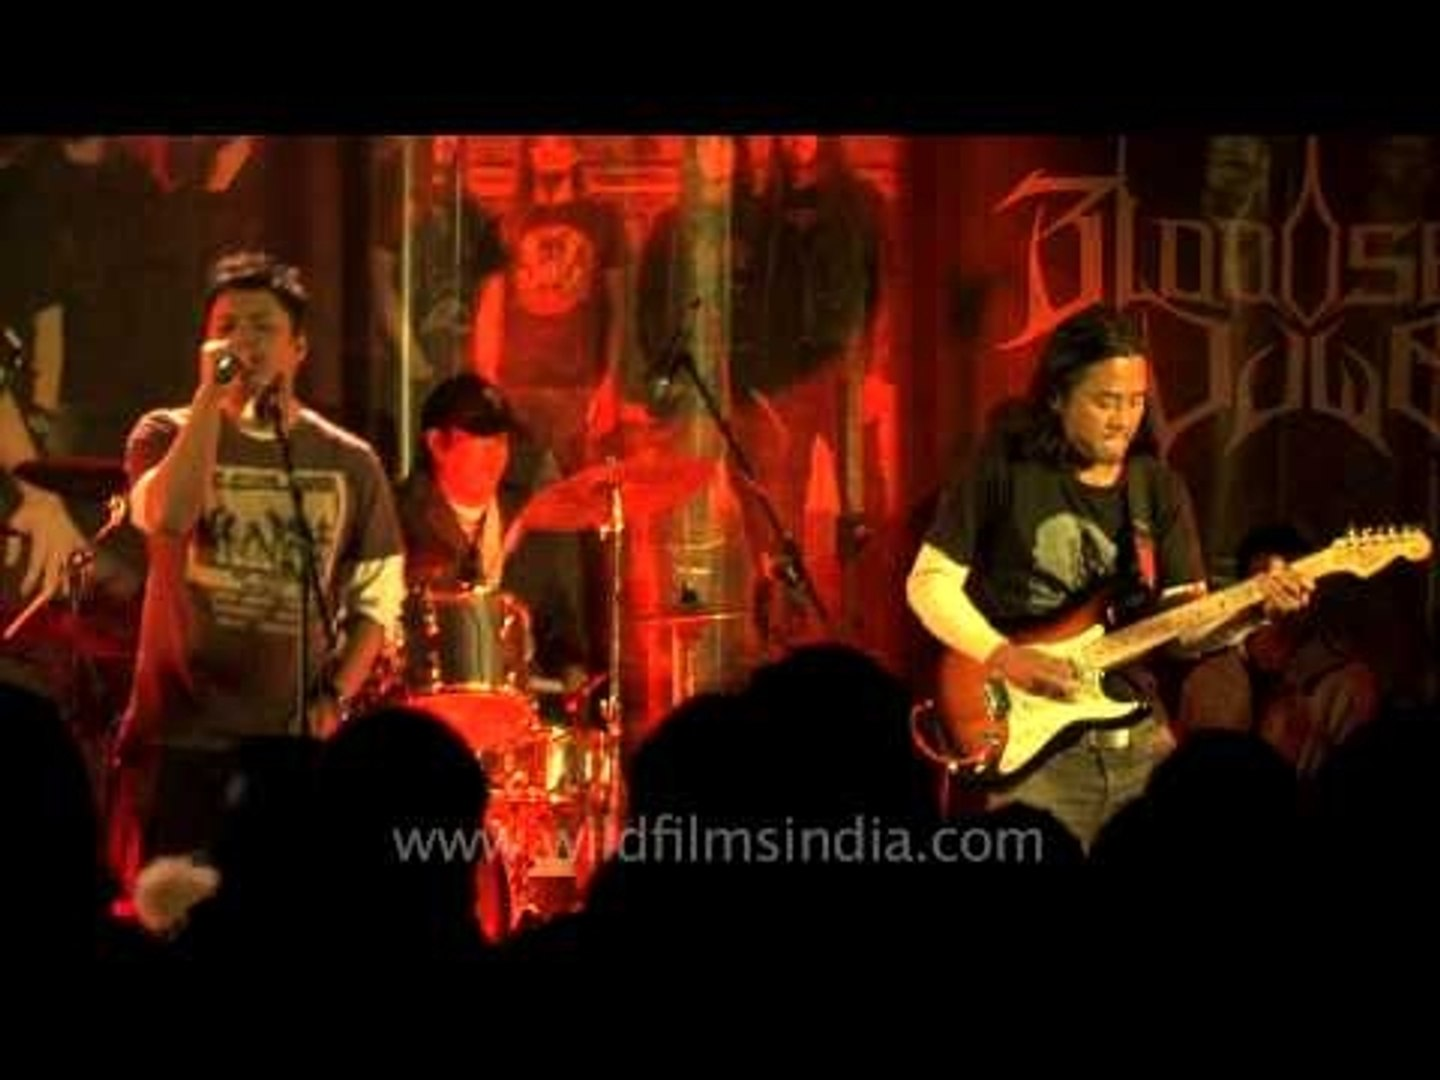 Recycle performing at the Maramfest 2012 in Senapati